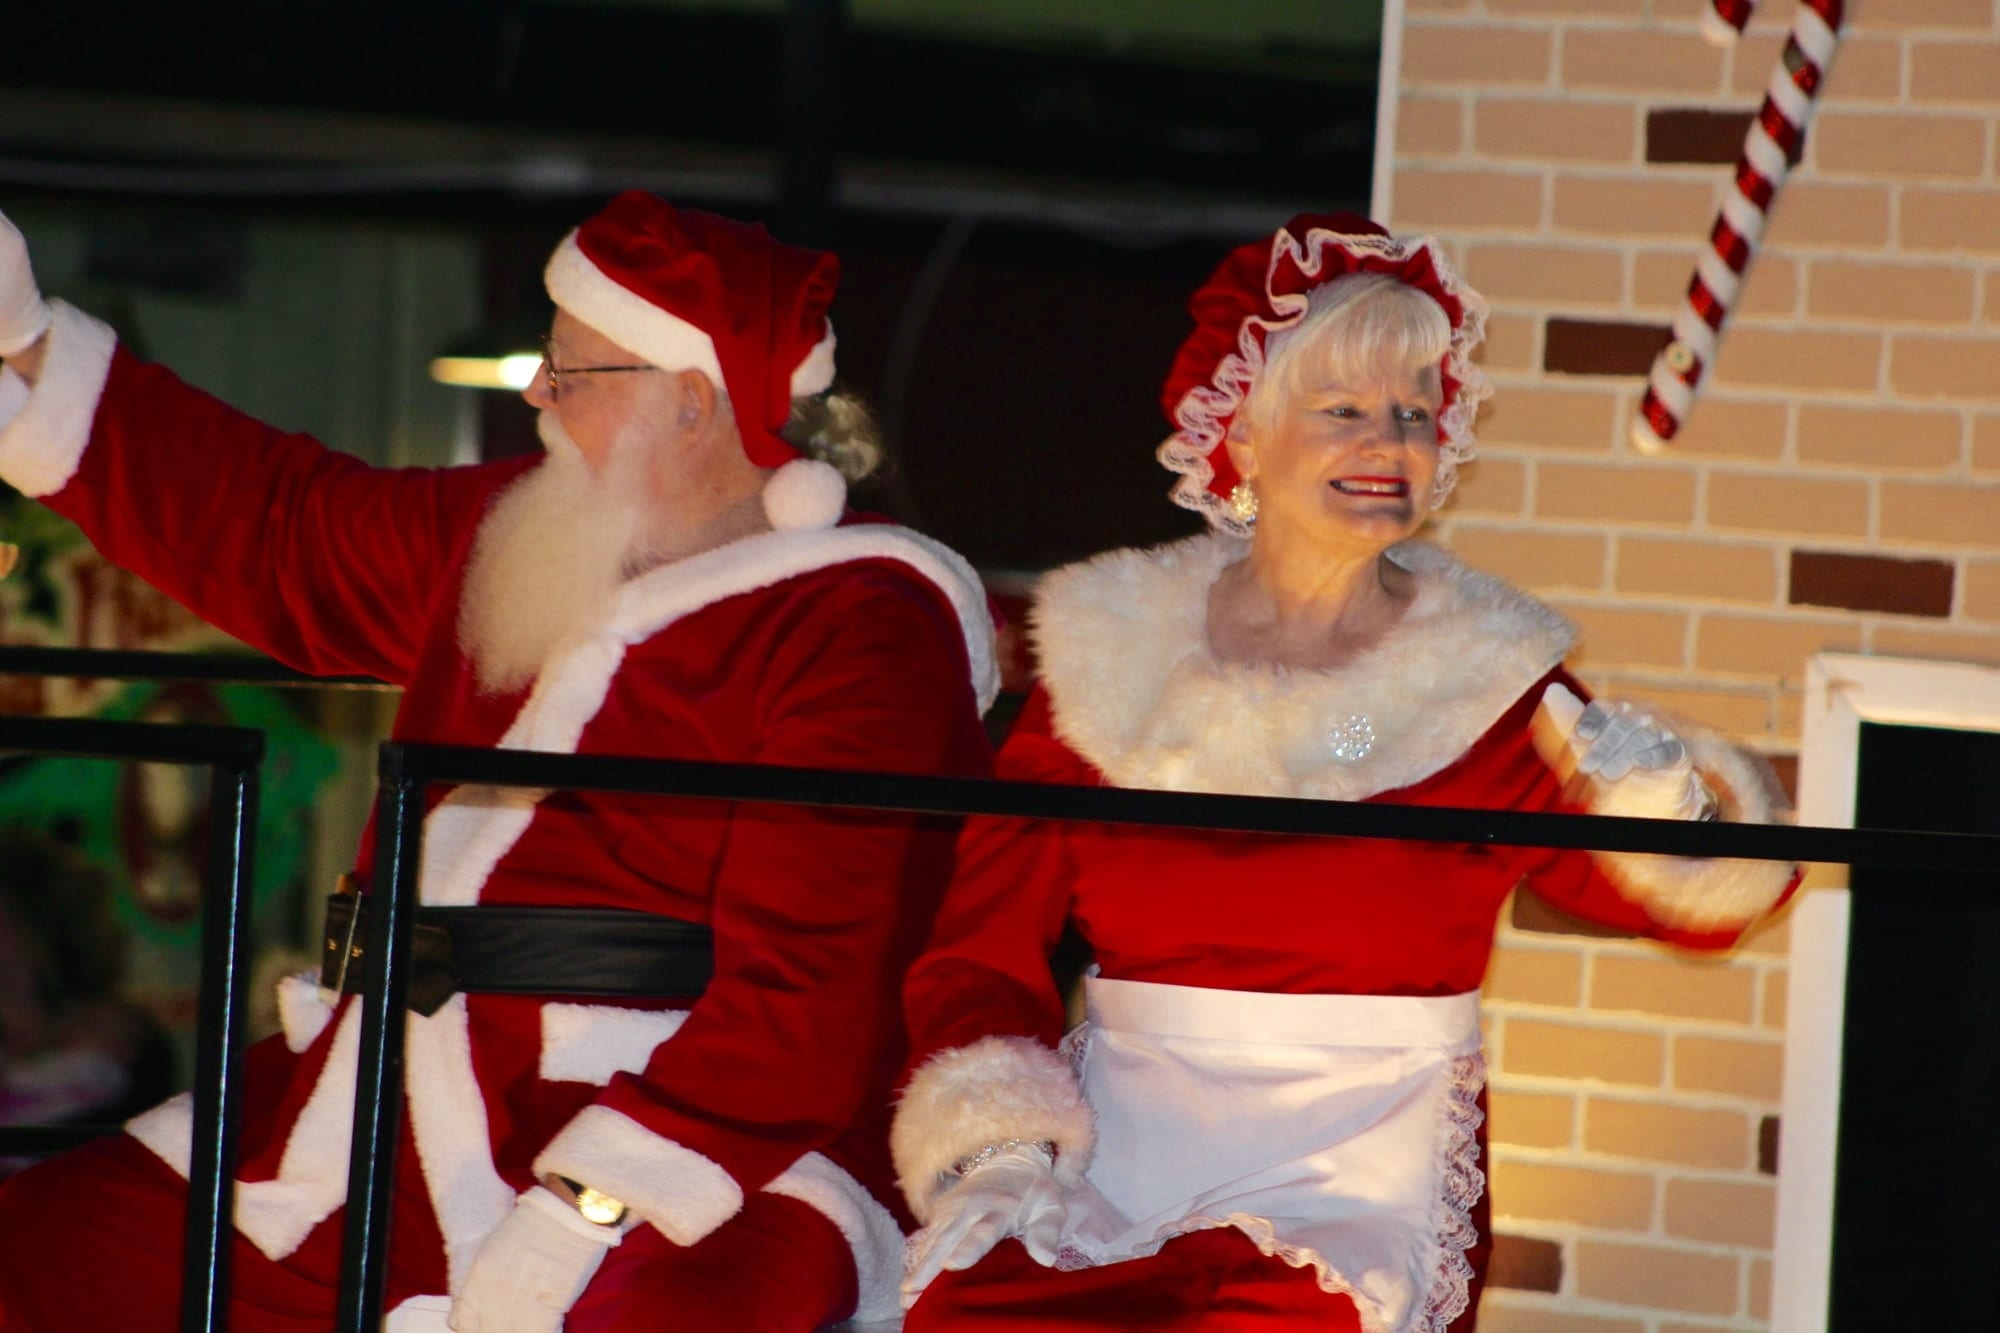 193c1217 At the end of the parade was Santa Claus and Mrs. Claus.